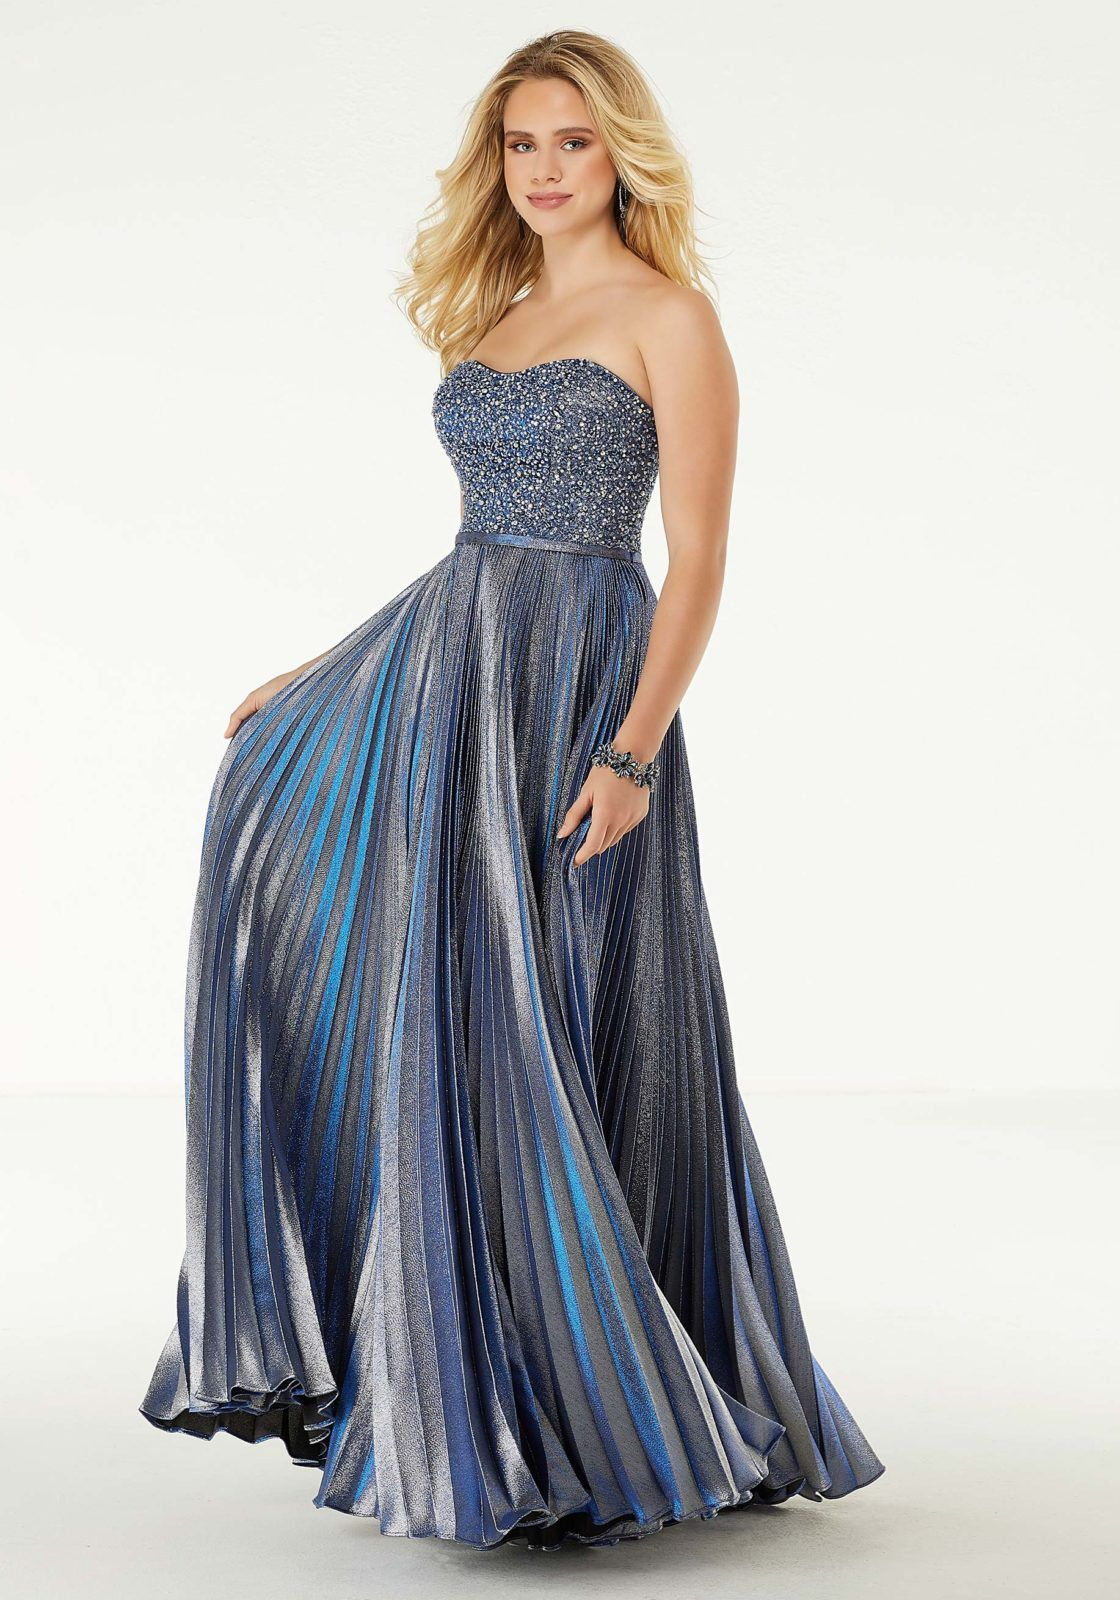 Crystal Pleated A Line Prom Dress Prom Dresses A Line Prom Dresses Perfect Prom Dress [ 1600 x 1120 Pixel ]